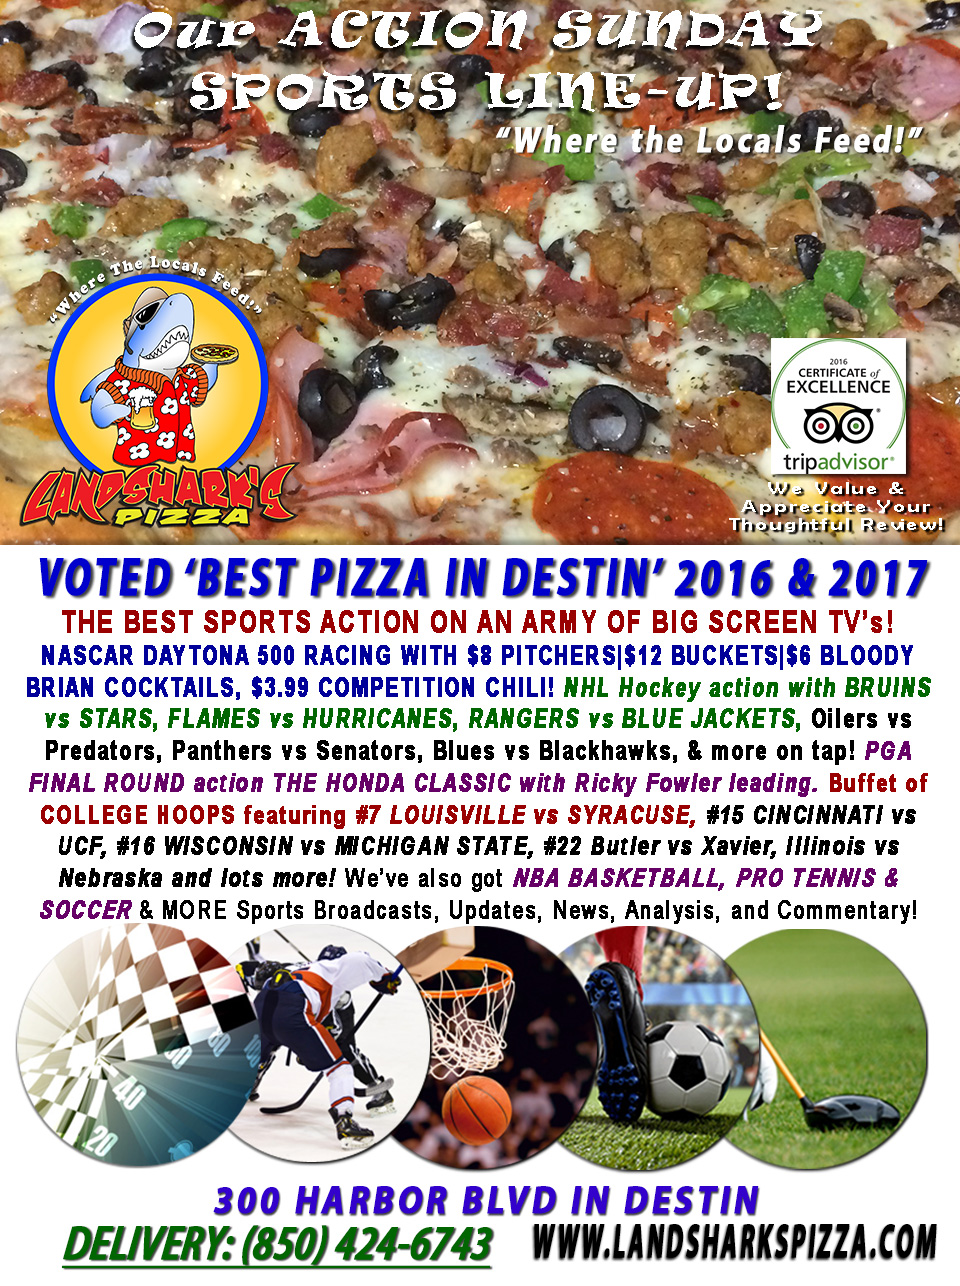 ACTION SUNDAY NASCAR CLASH@DAYTONA is TODAY! Eat the Best Pizza in Destin, Cocktails, Craft Beer NHL, NCAA & NBA!